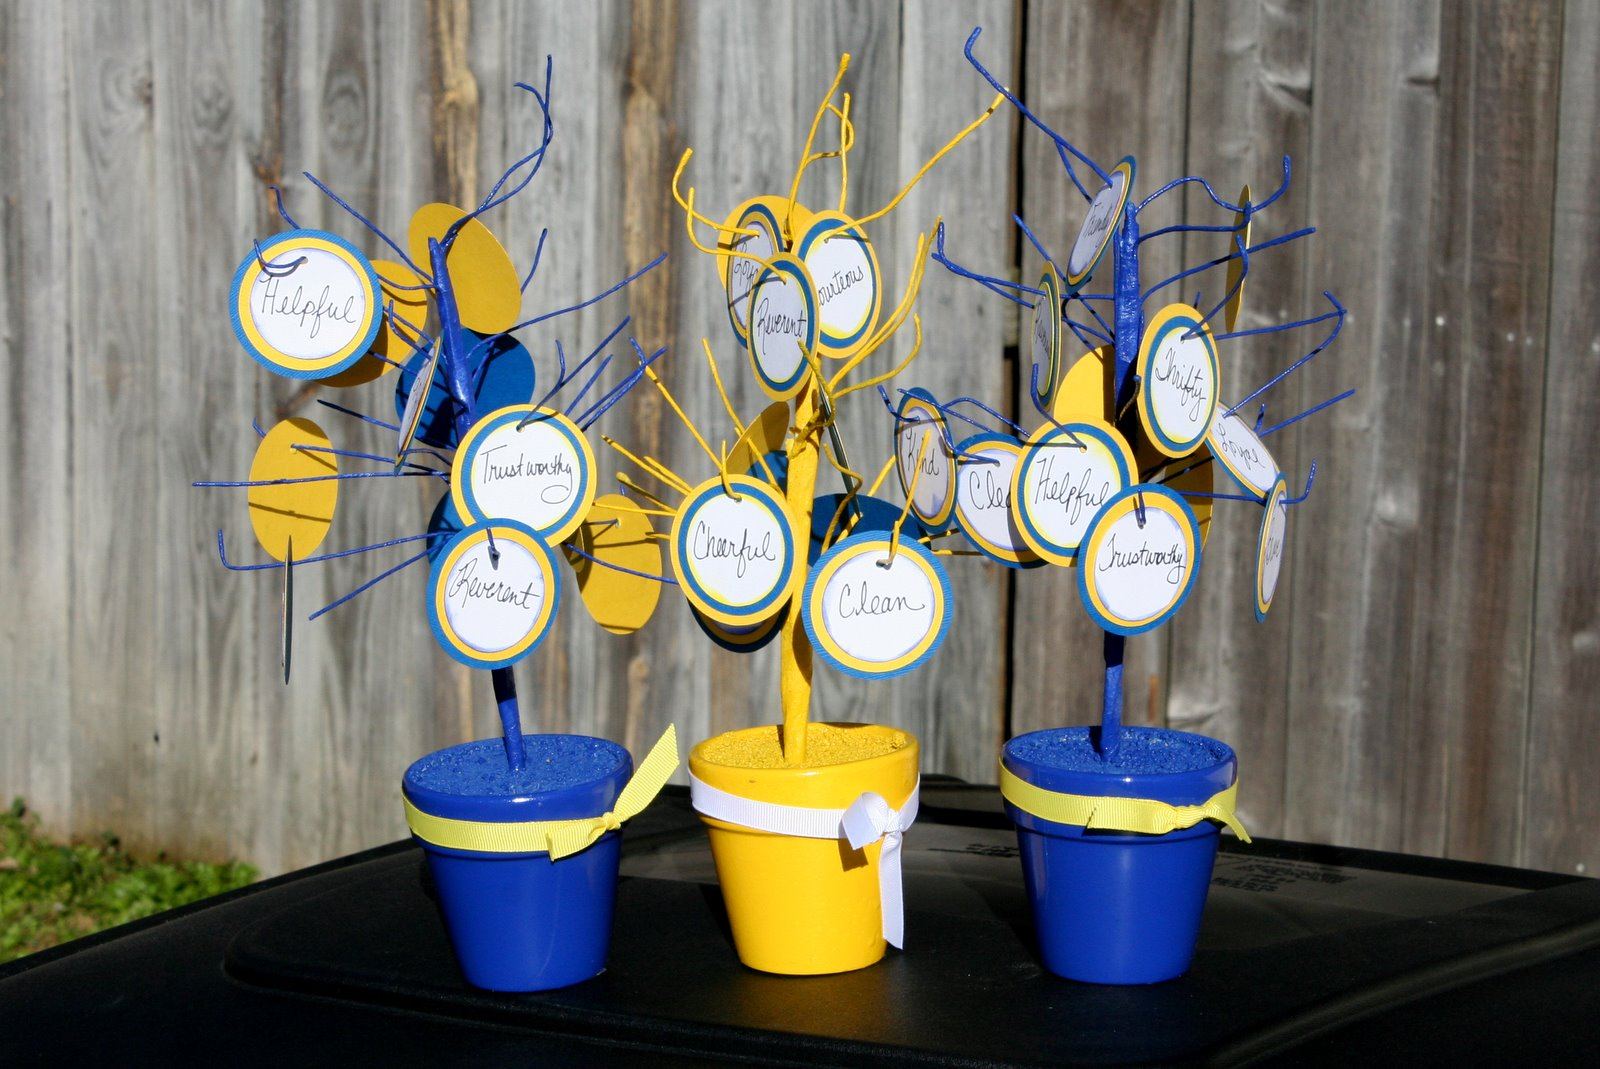 Rachel brister cub scout blue and gold banquet centerpieces